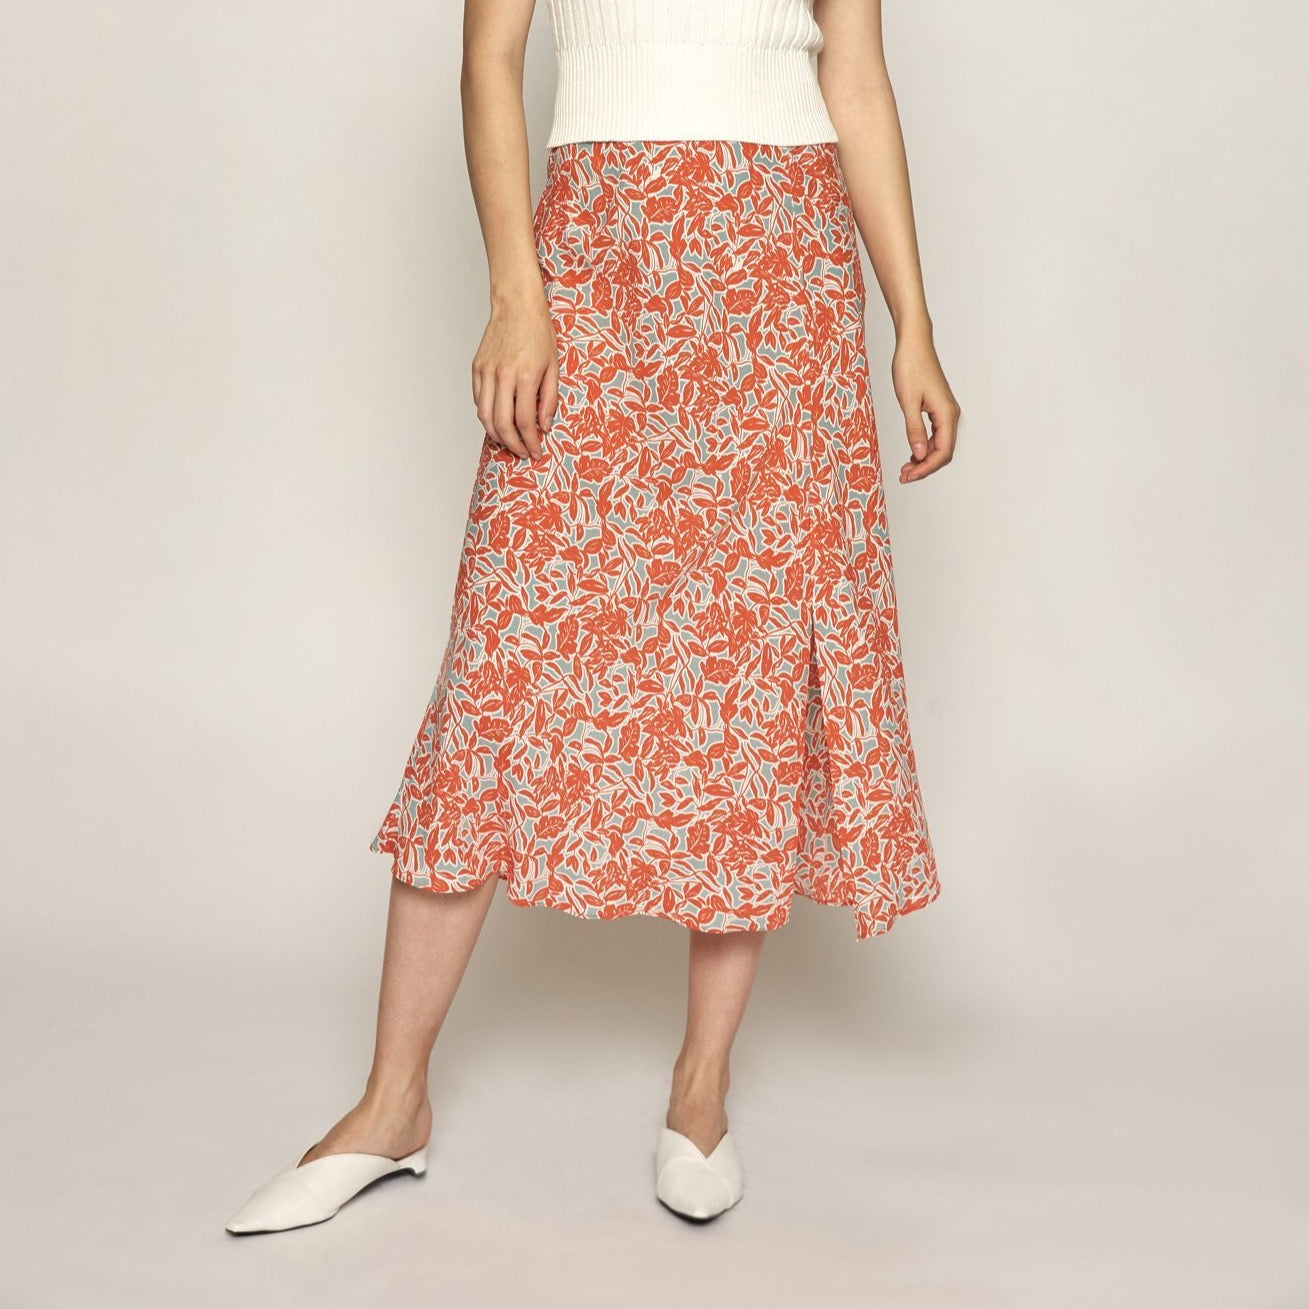 DELICATE FLORAL MIDI SKIRT